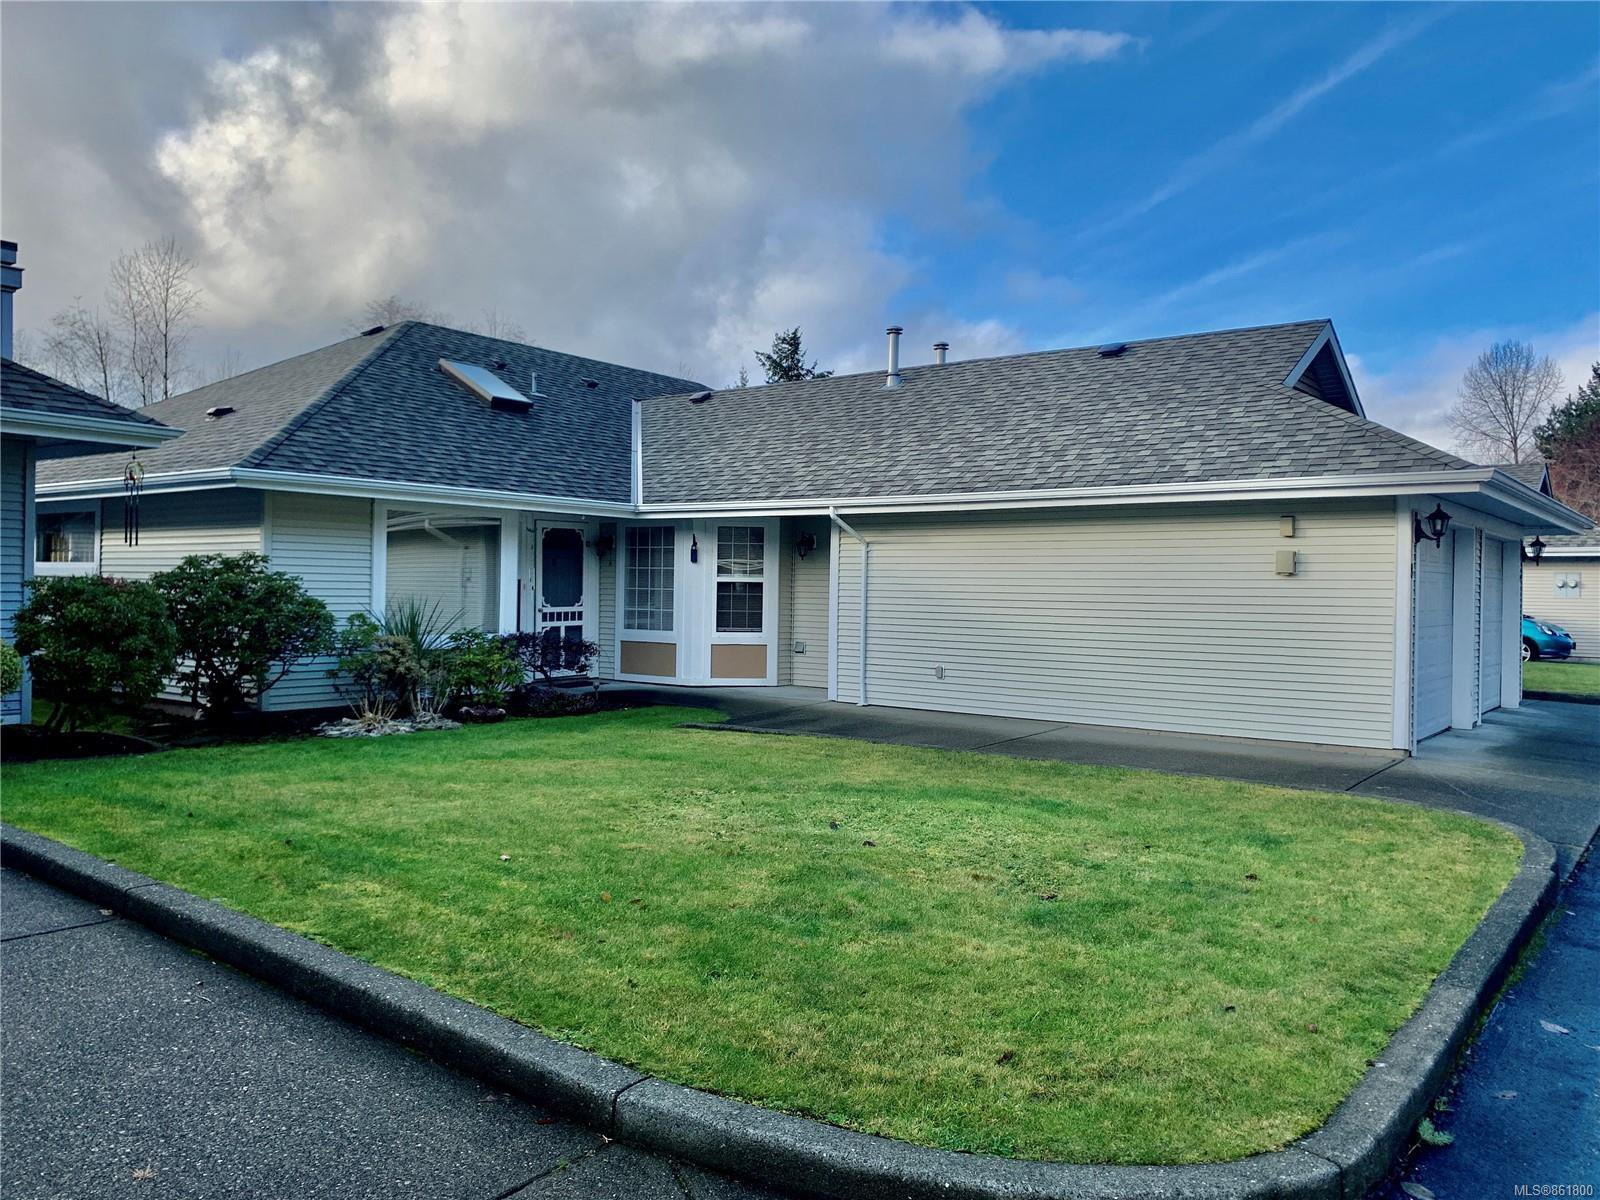 Main Photo: 8 2010 20th St in : CV Courtenay City Row/Townhouse for sale (Comox Valley)  : MLS®# 861800